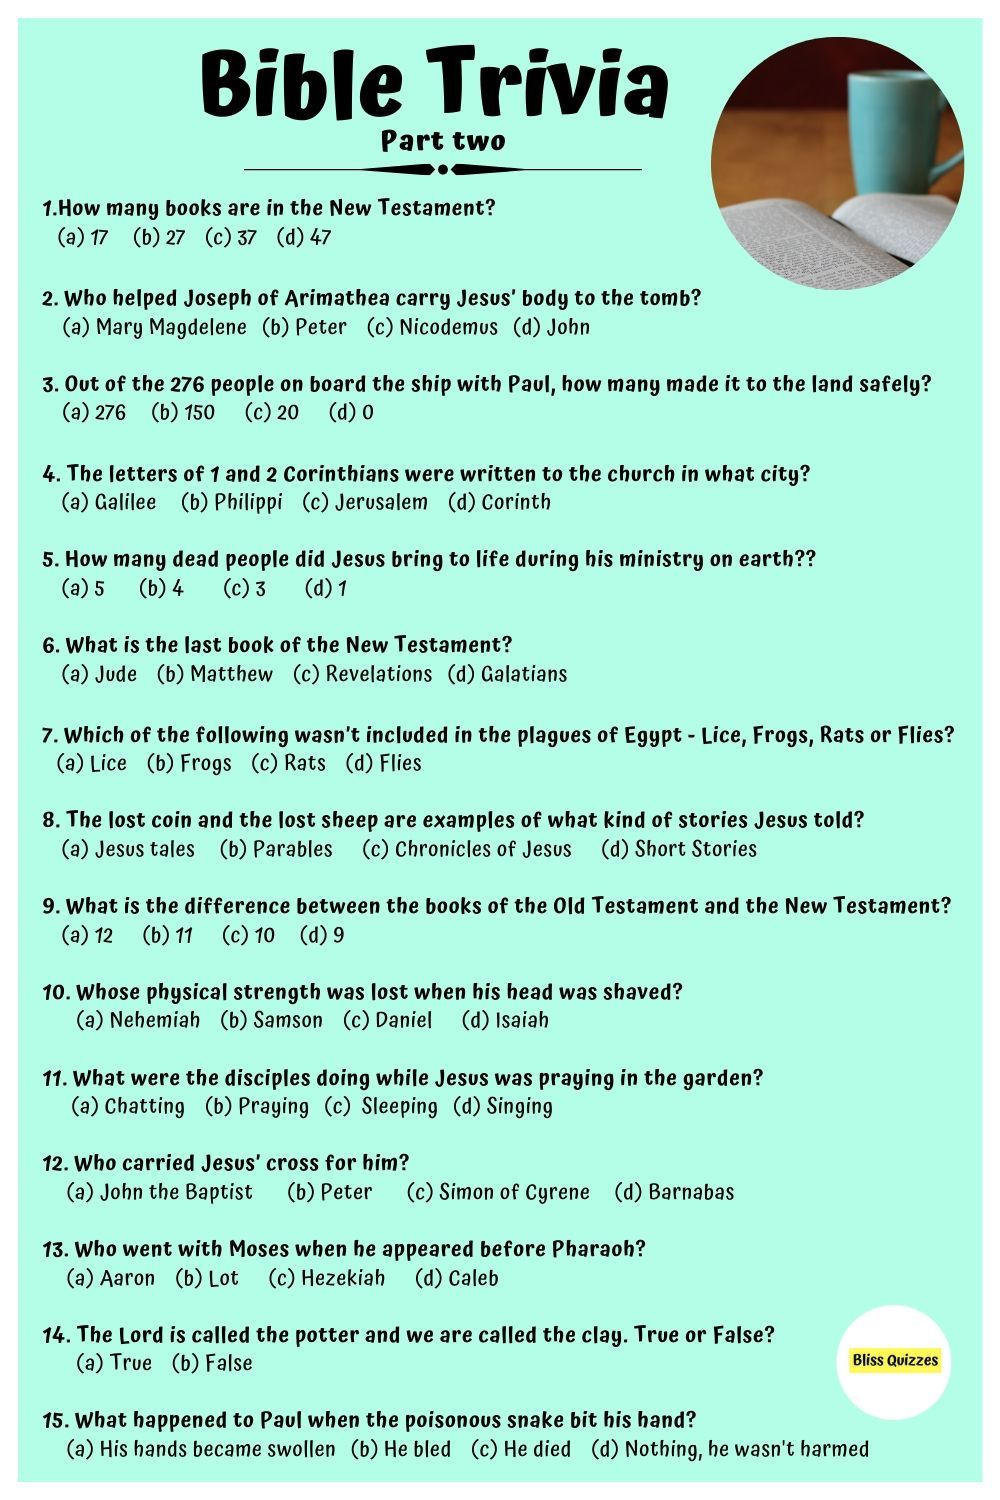 Bible Trivia Questions And Answers Part Two In 2021 Bible Facts Trivia Questions And Answers Bible Quiz Questions